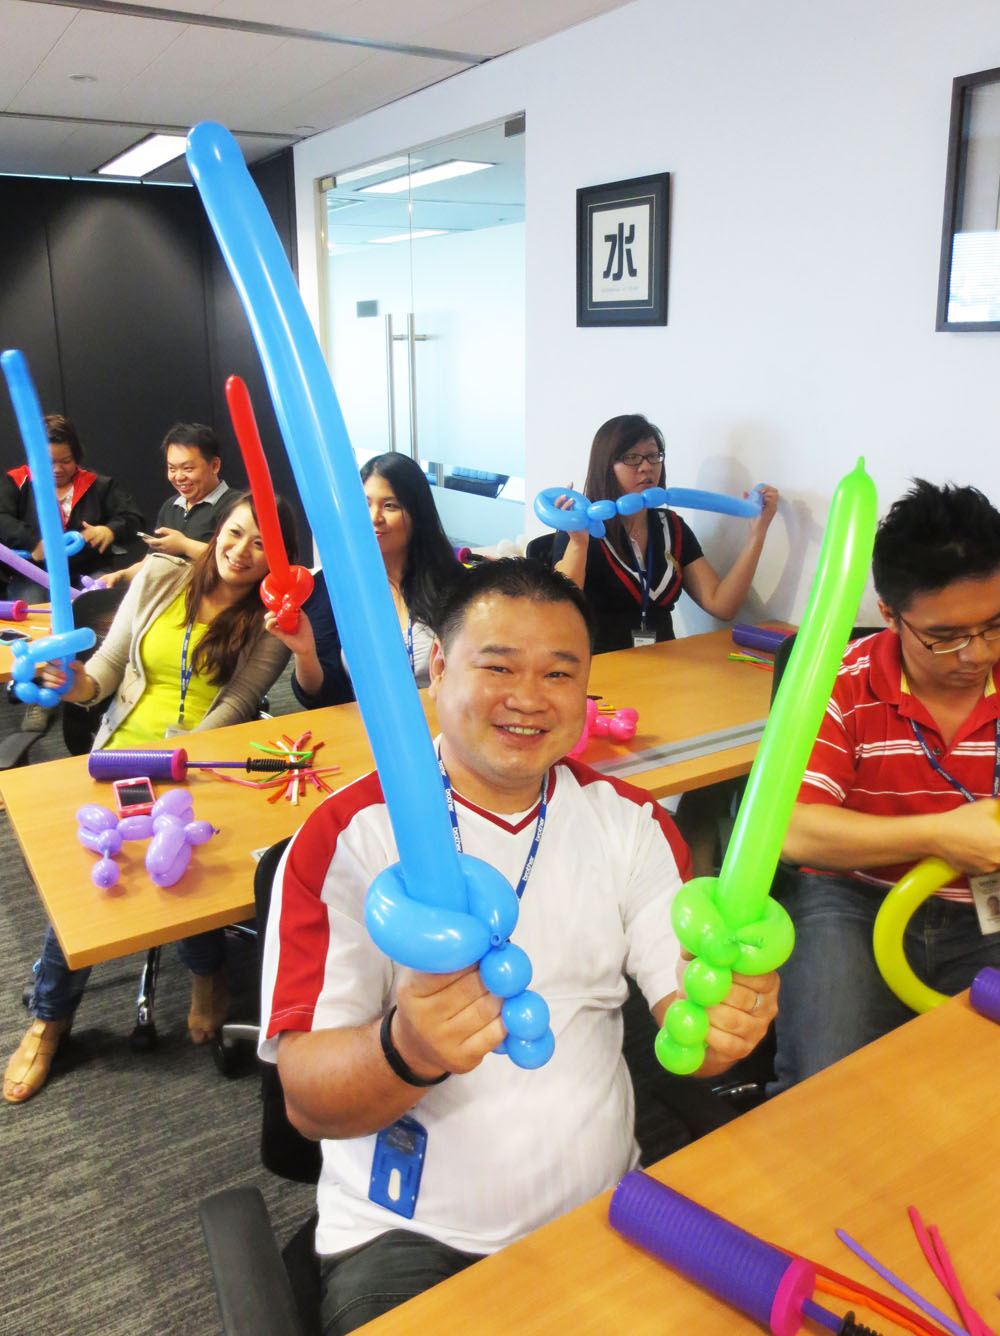 , A quick recent update of what Artsyballoons have been doing!, Singapore Balloon Decoration Services - Balloon Workshop and Balloon Sculpting